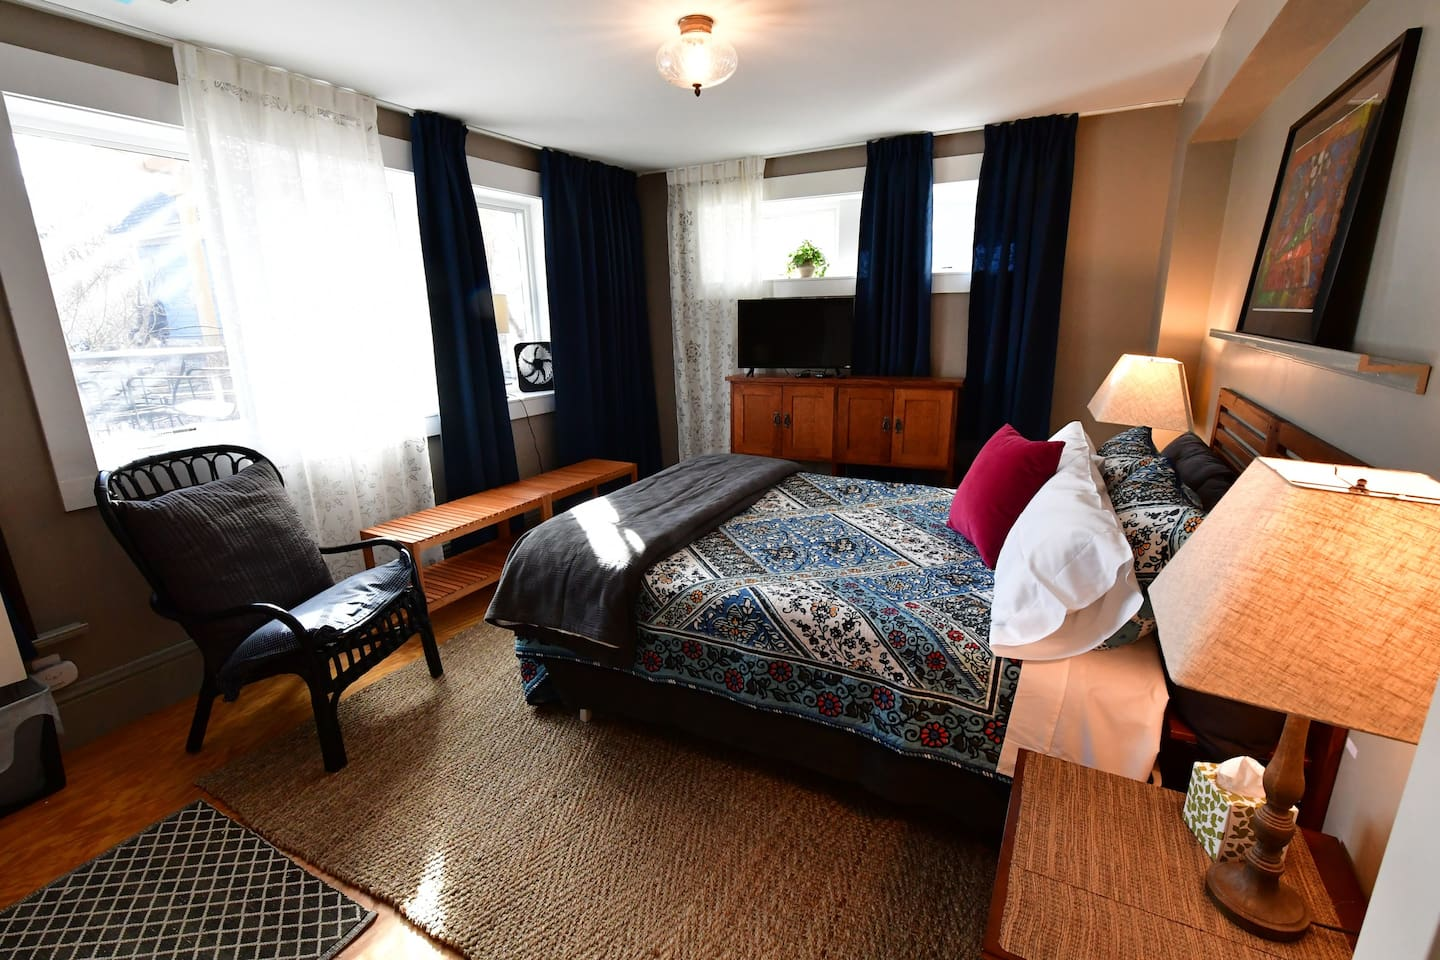 Large comfortable room with private entrance and private bathroom. Parking is free on the street or with guest pass. Wifi is high-speed.